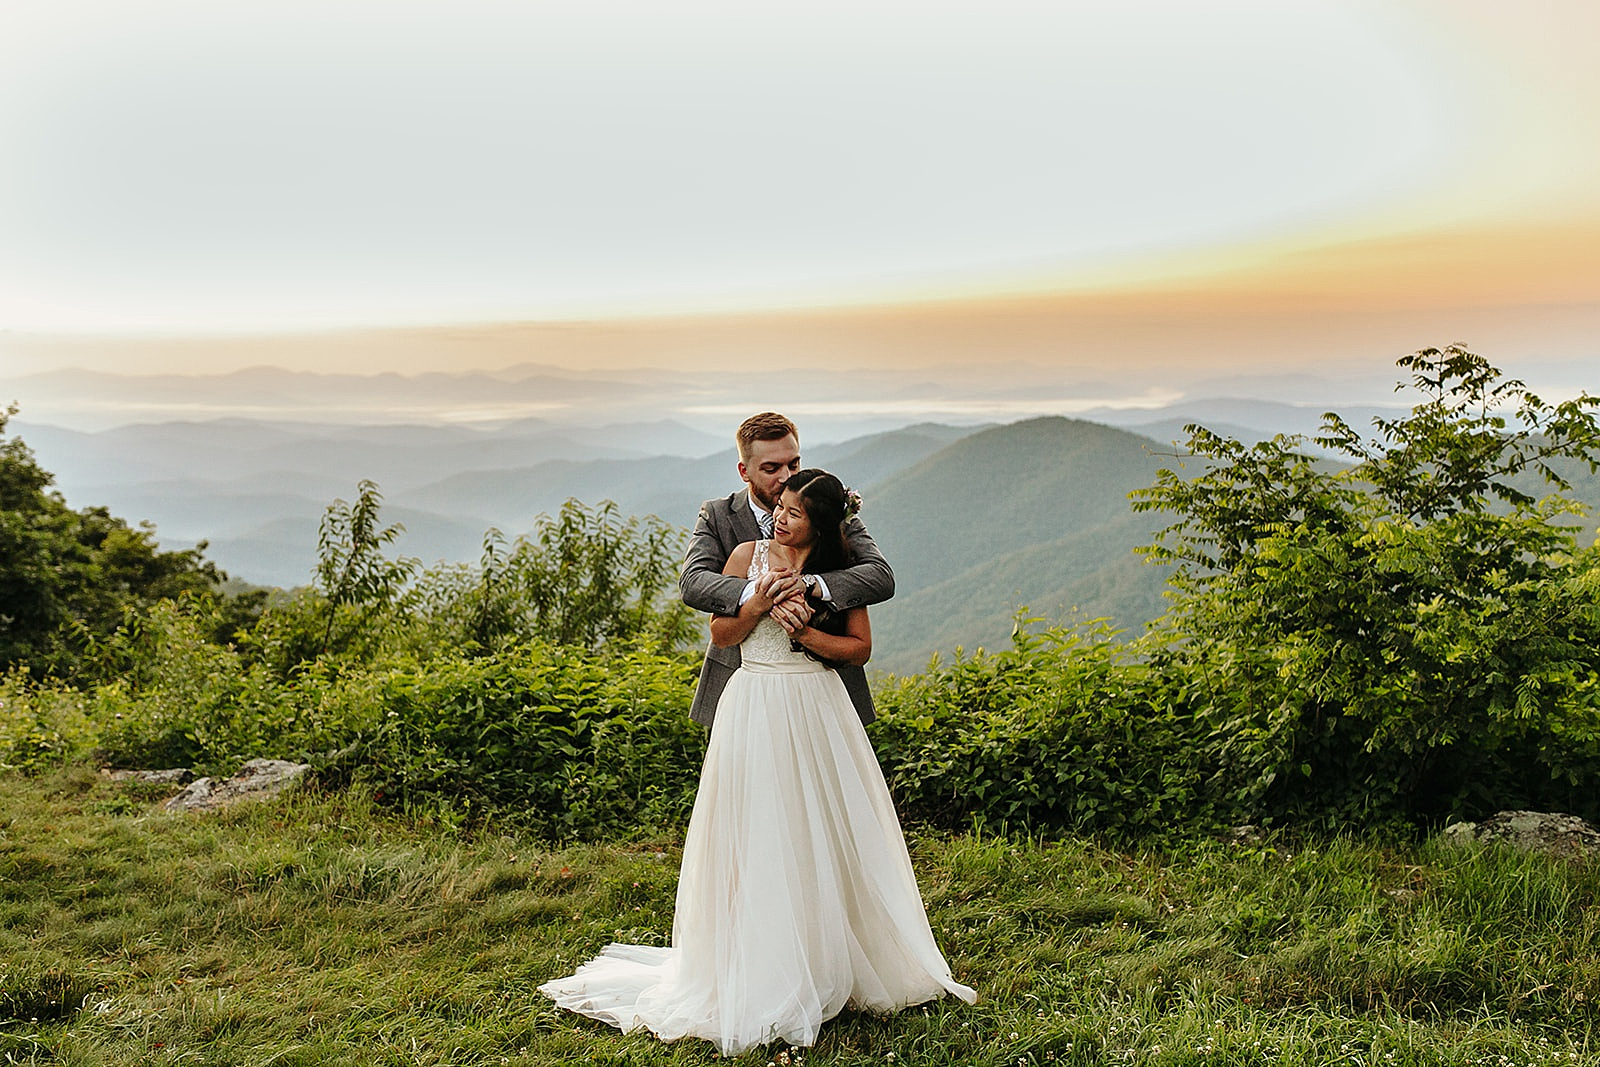 Asheville Wedding Photographer, Asheville Wedding Photos, Asheville Engagement Photographer, North Carolina Wedding Photographer, Asheville Elopement Photos, Asheville Elopement Photographer, Asheville Wedding Venues, Blue Ridge Parkway Elopement, Sunrise Elopement at Blue Ridge Parkway